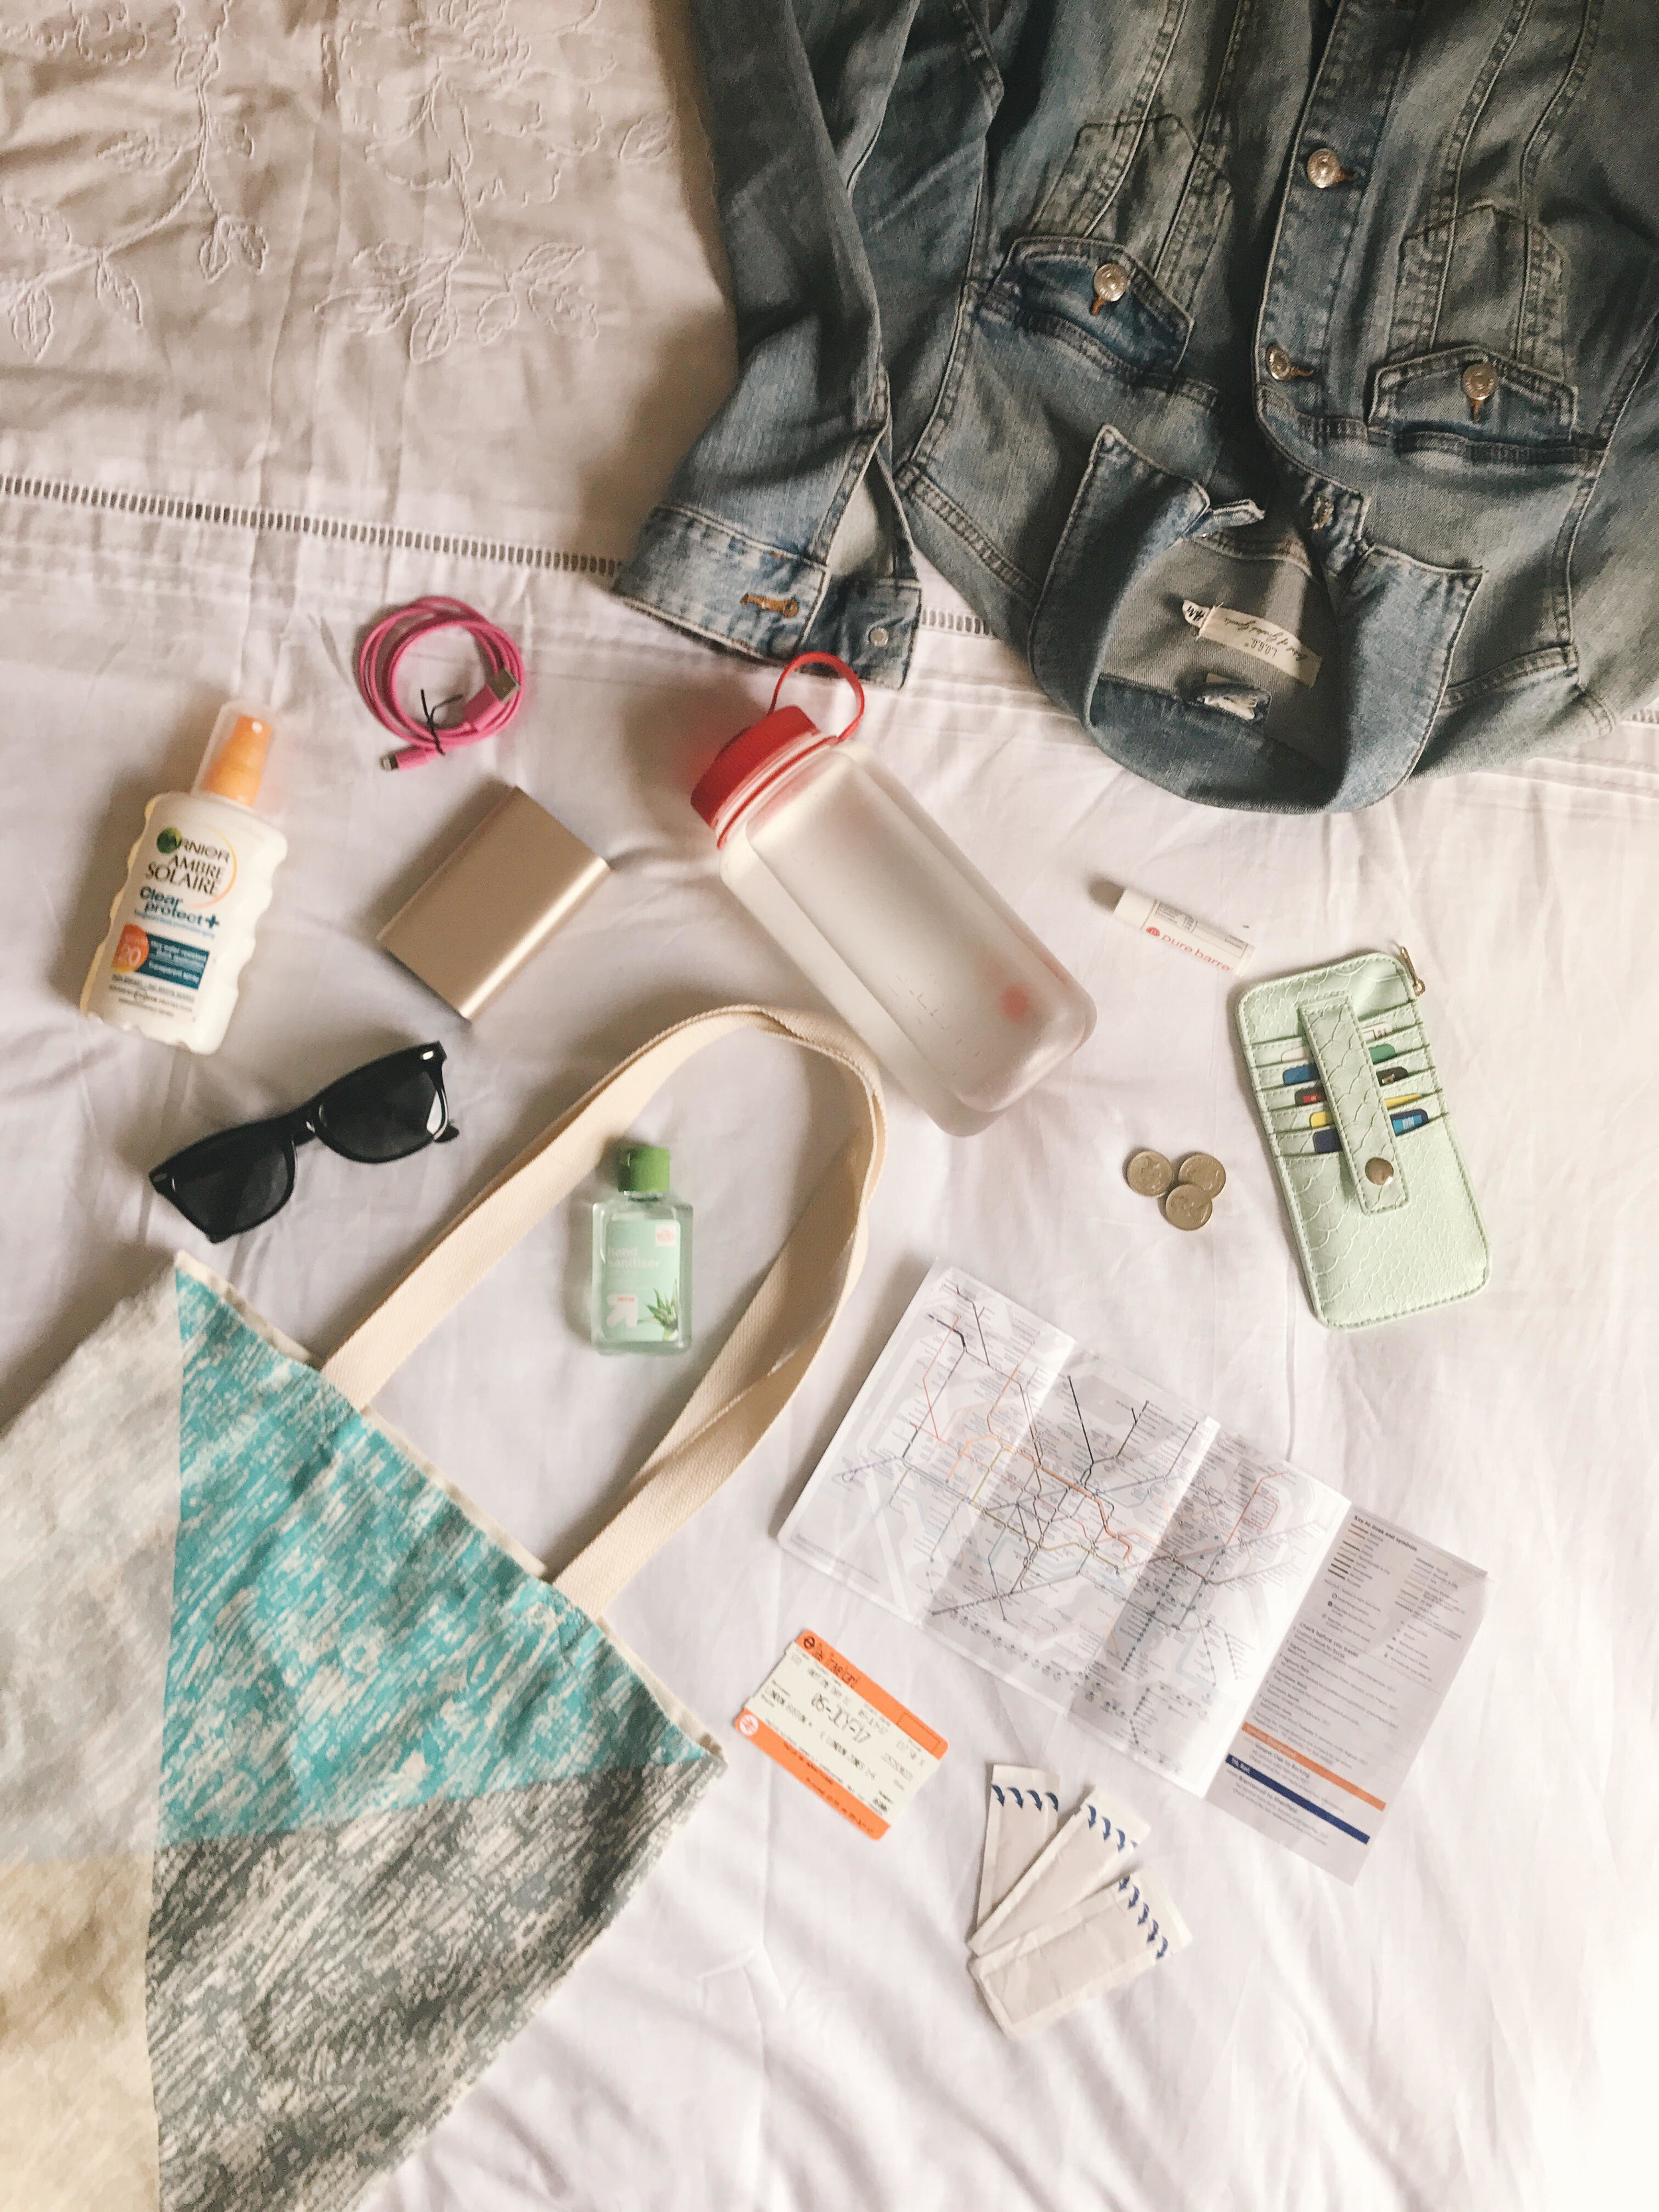 10-items-for-a-day-trip-to-london